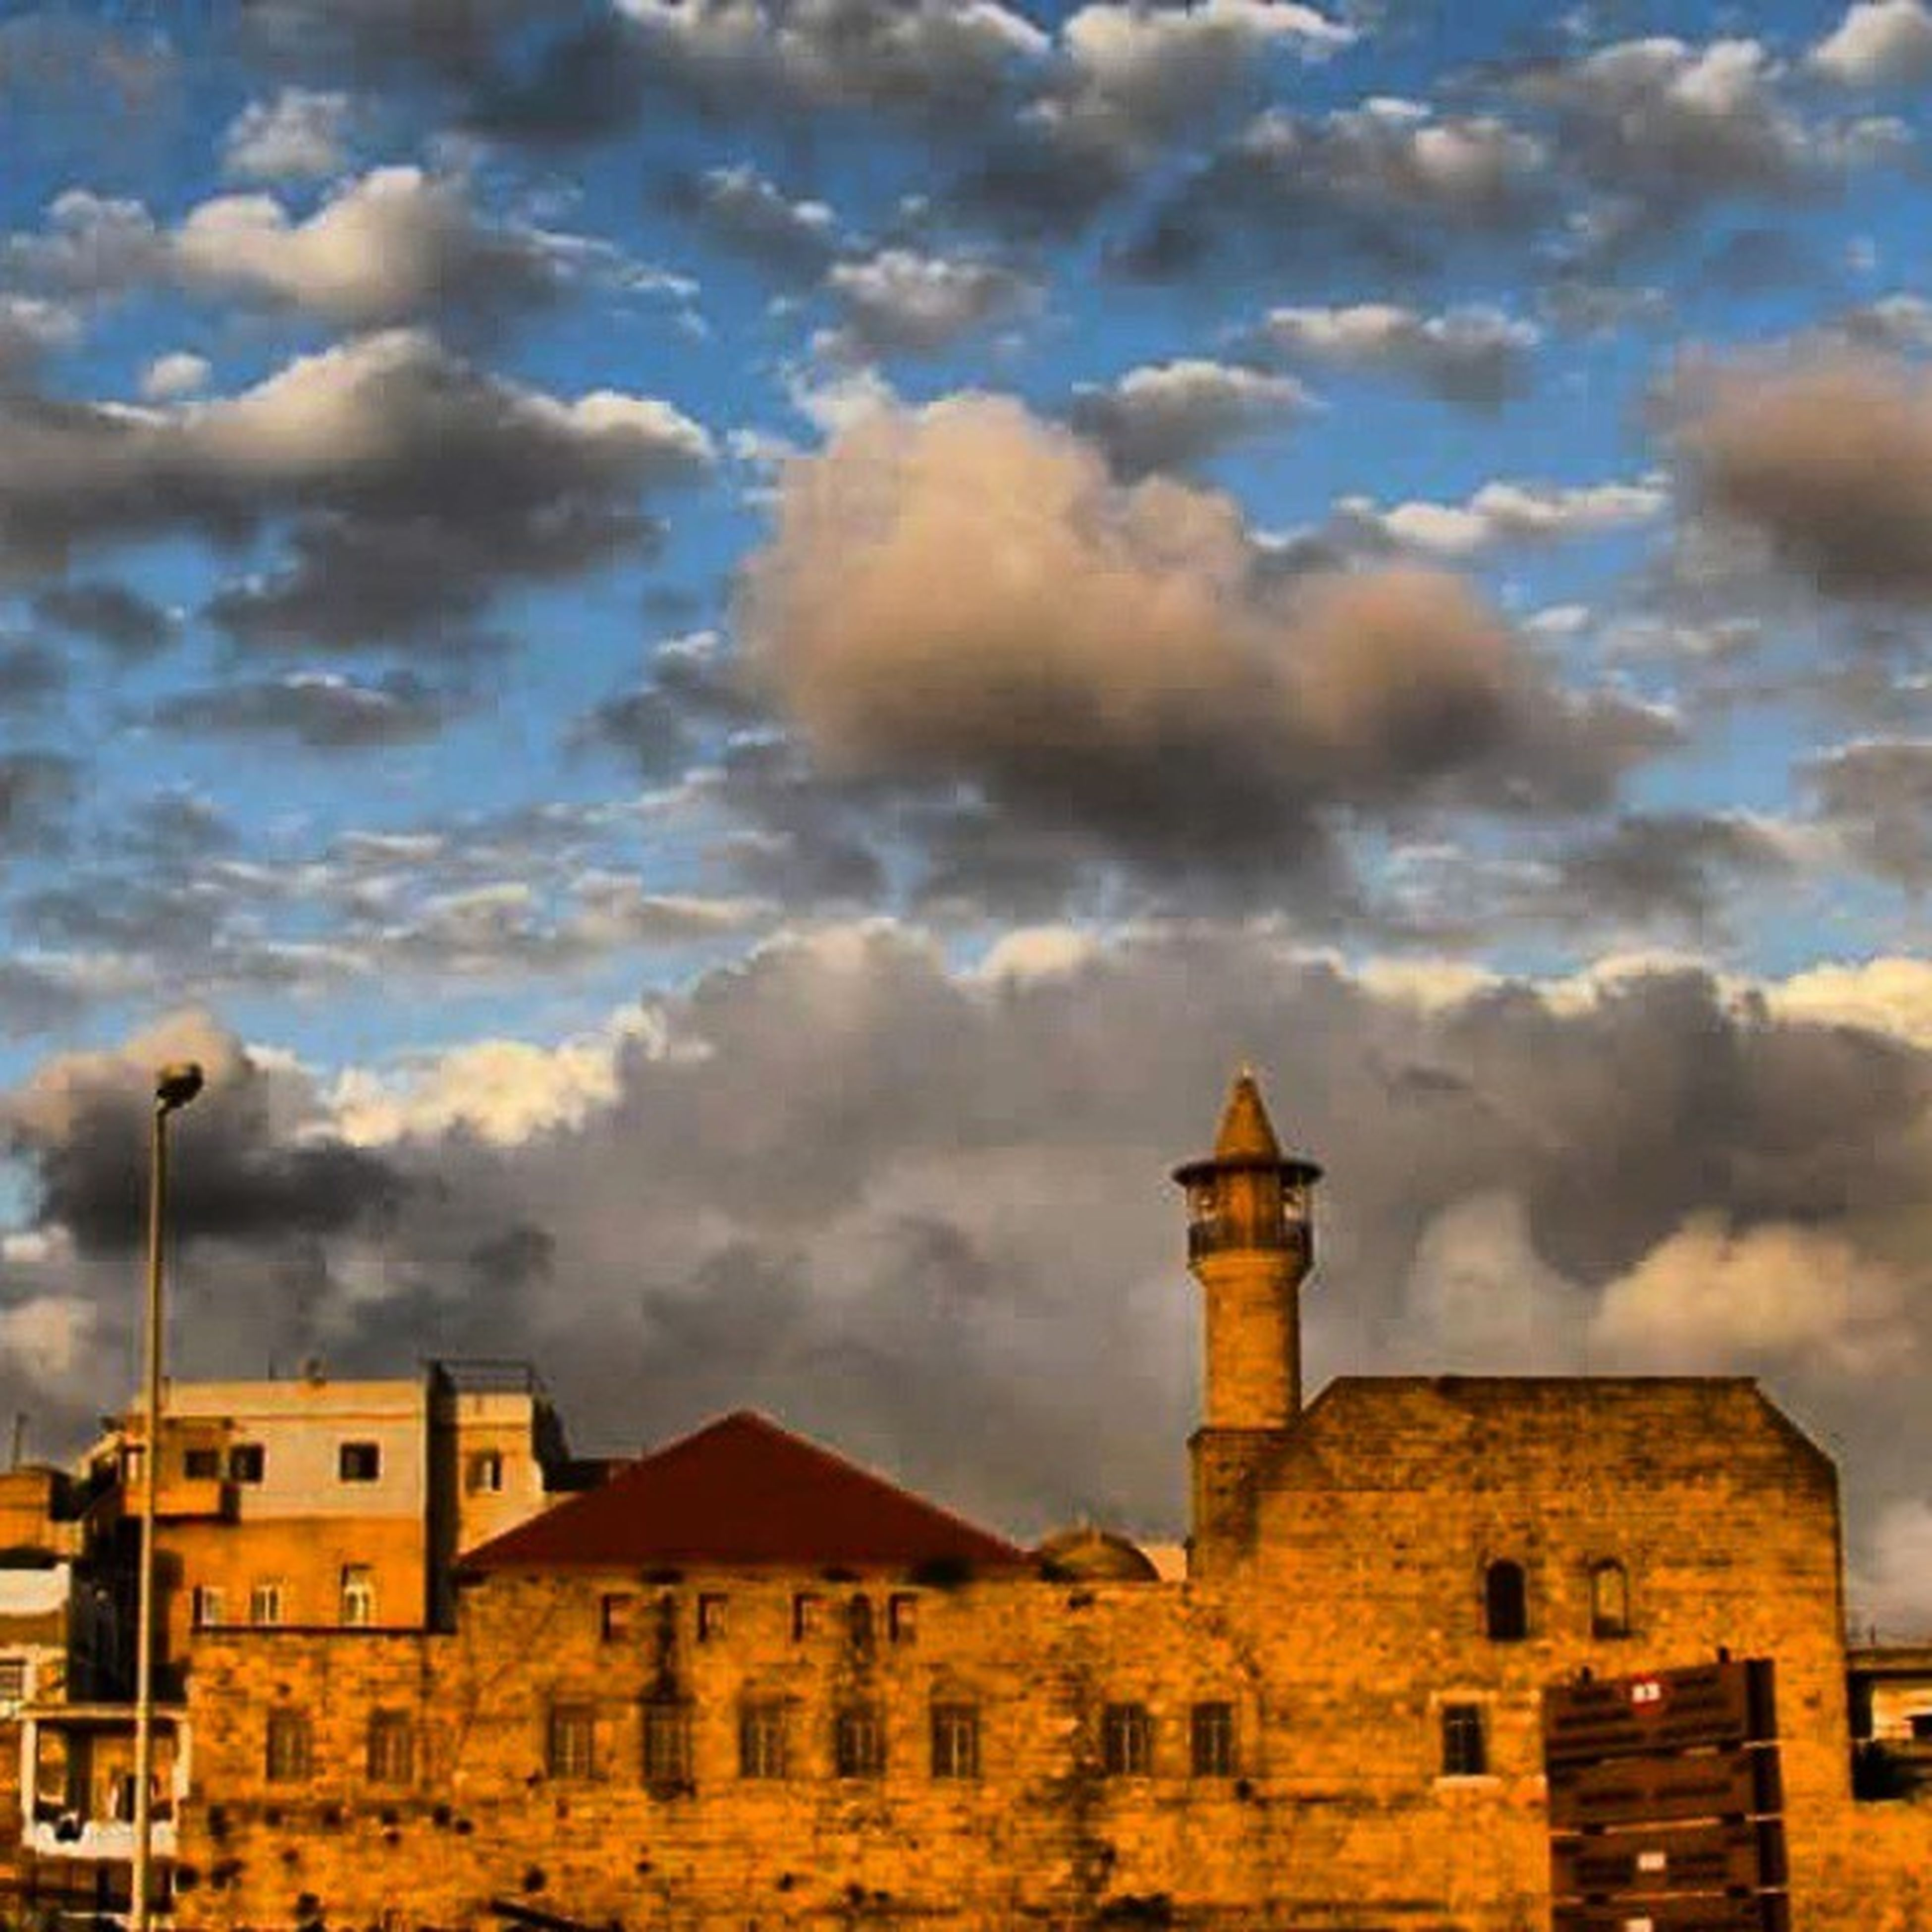 building exterior, architecture, built structure, sky, cloud - sky, cloudy, house, residential structure, residential building, weather, cloud, low angle view, building, overcast, outdoors, city, no people, nature, storm cloud, sunset